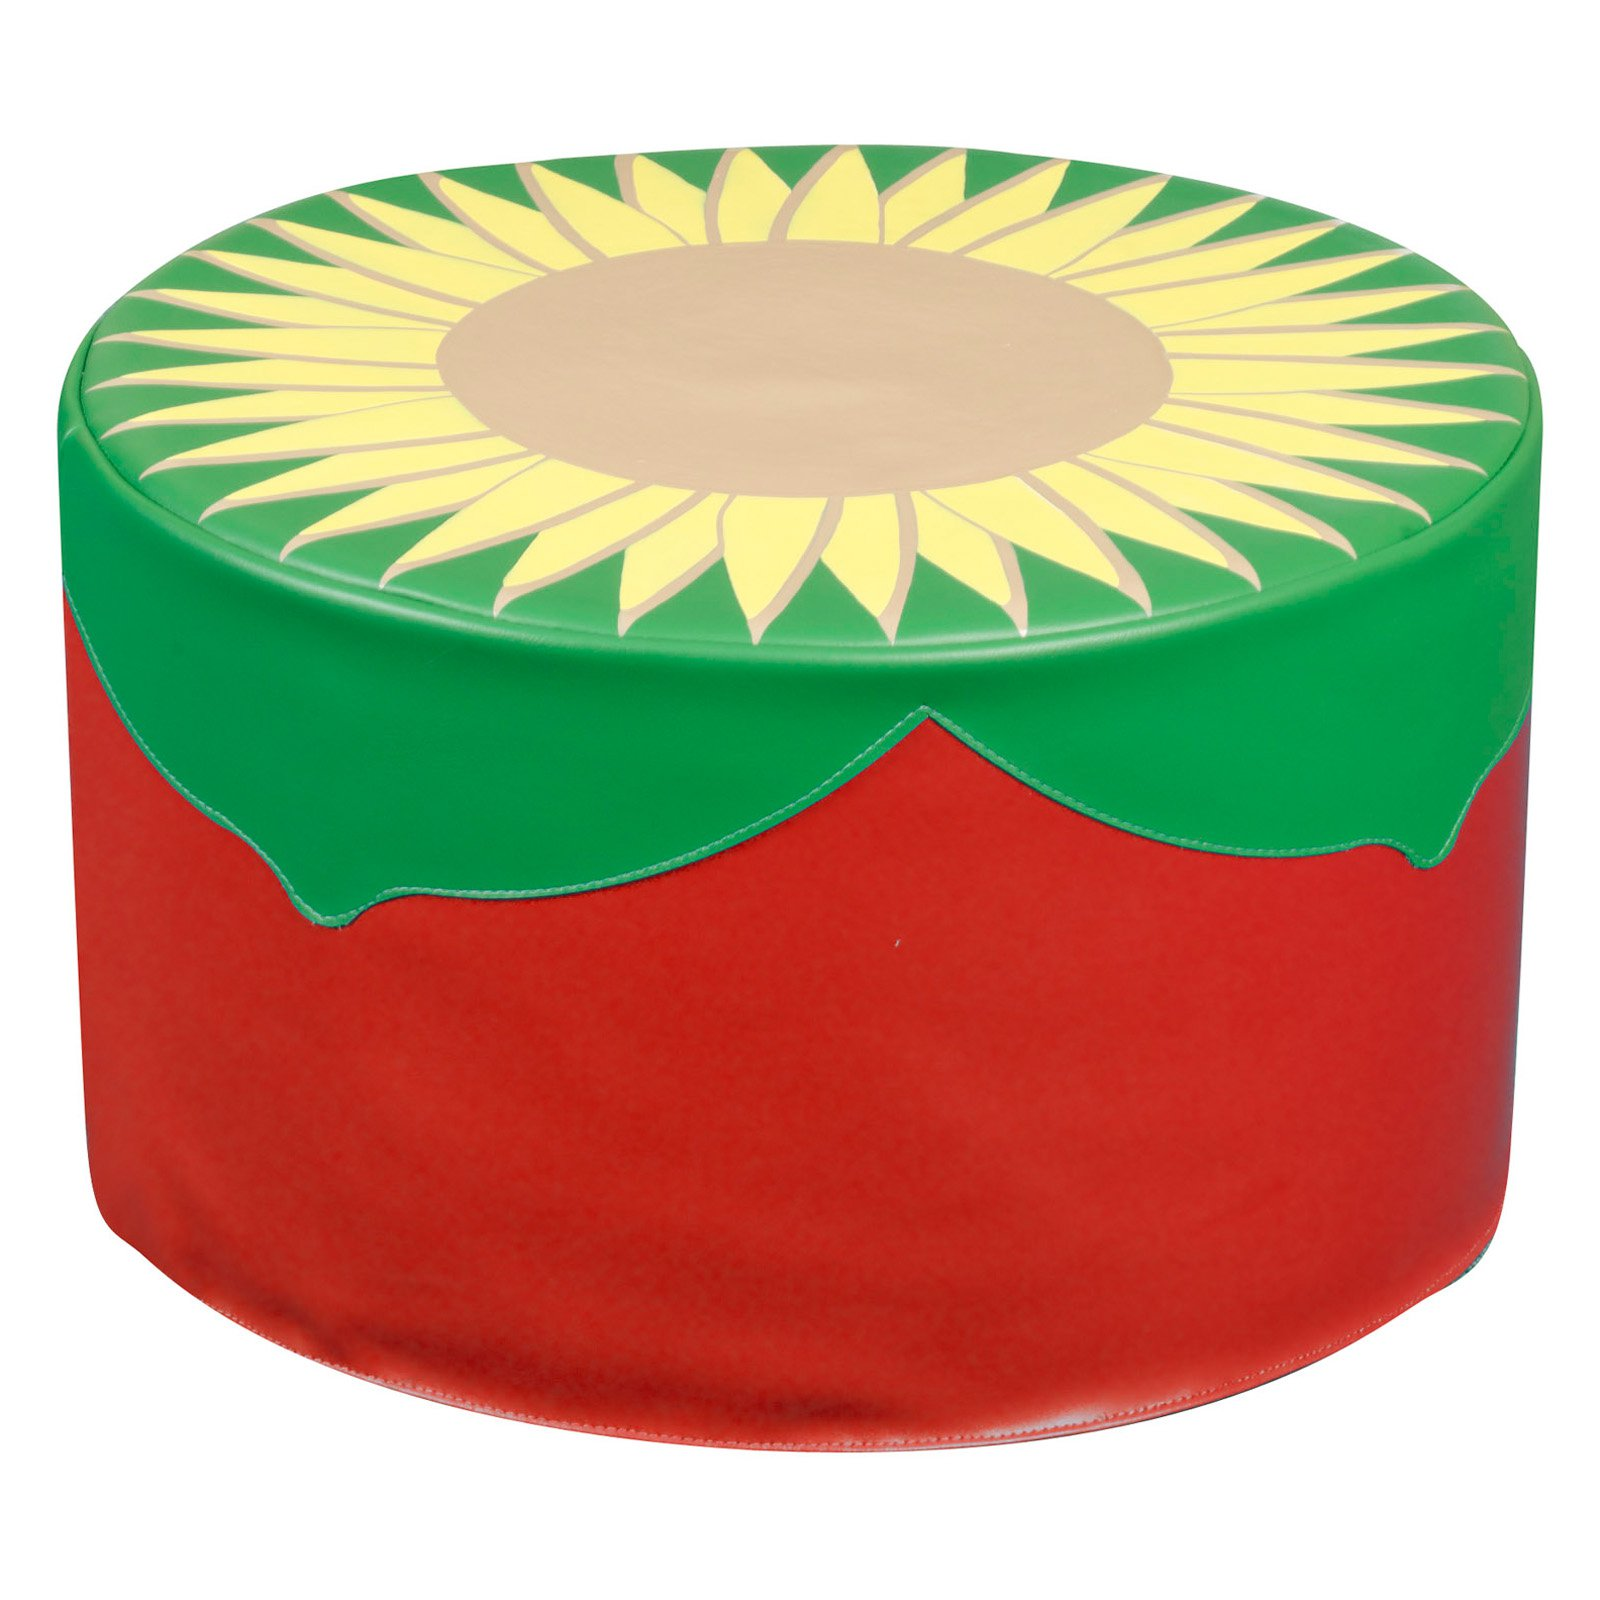 Kalokids Back to Nature Sunflower Pouf